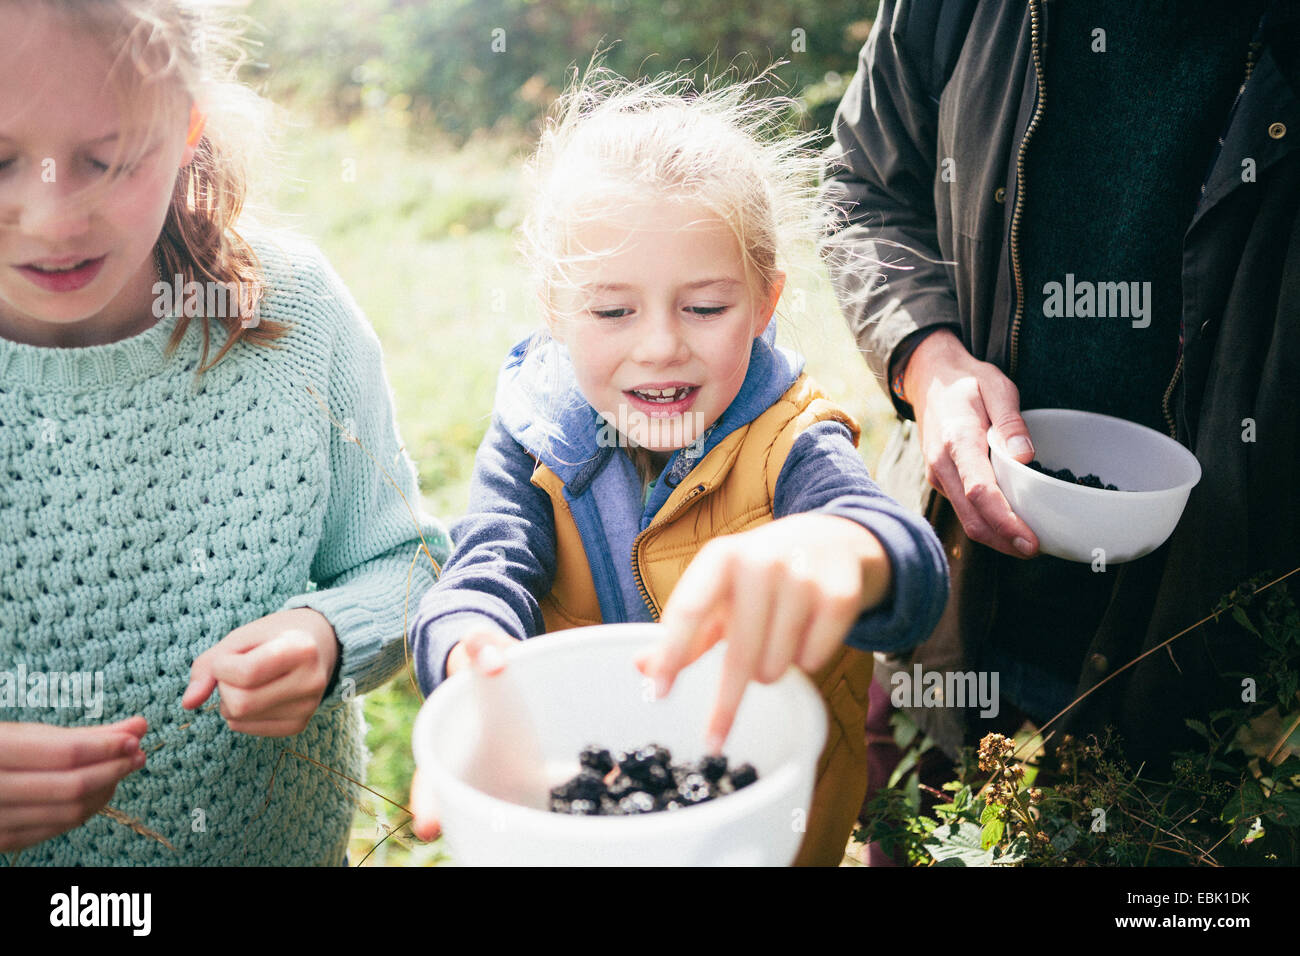 Two girls holding blackberries in bowl - Stock Image